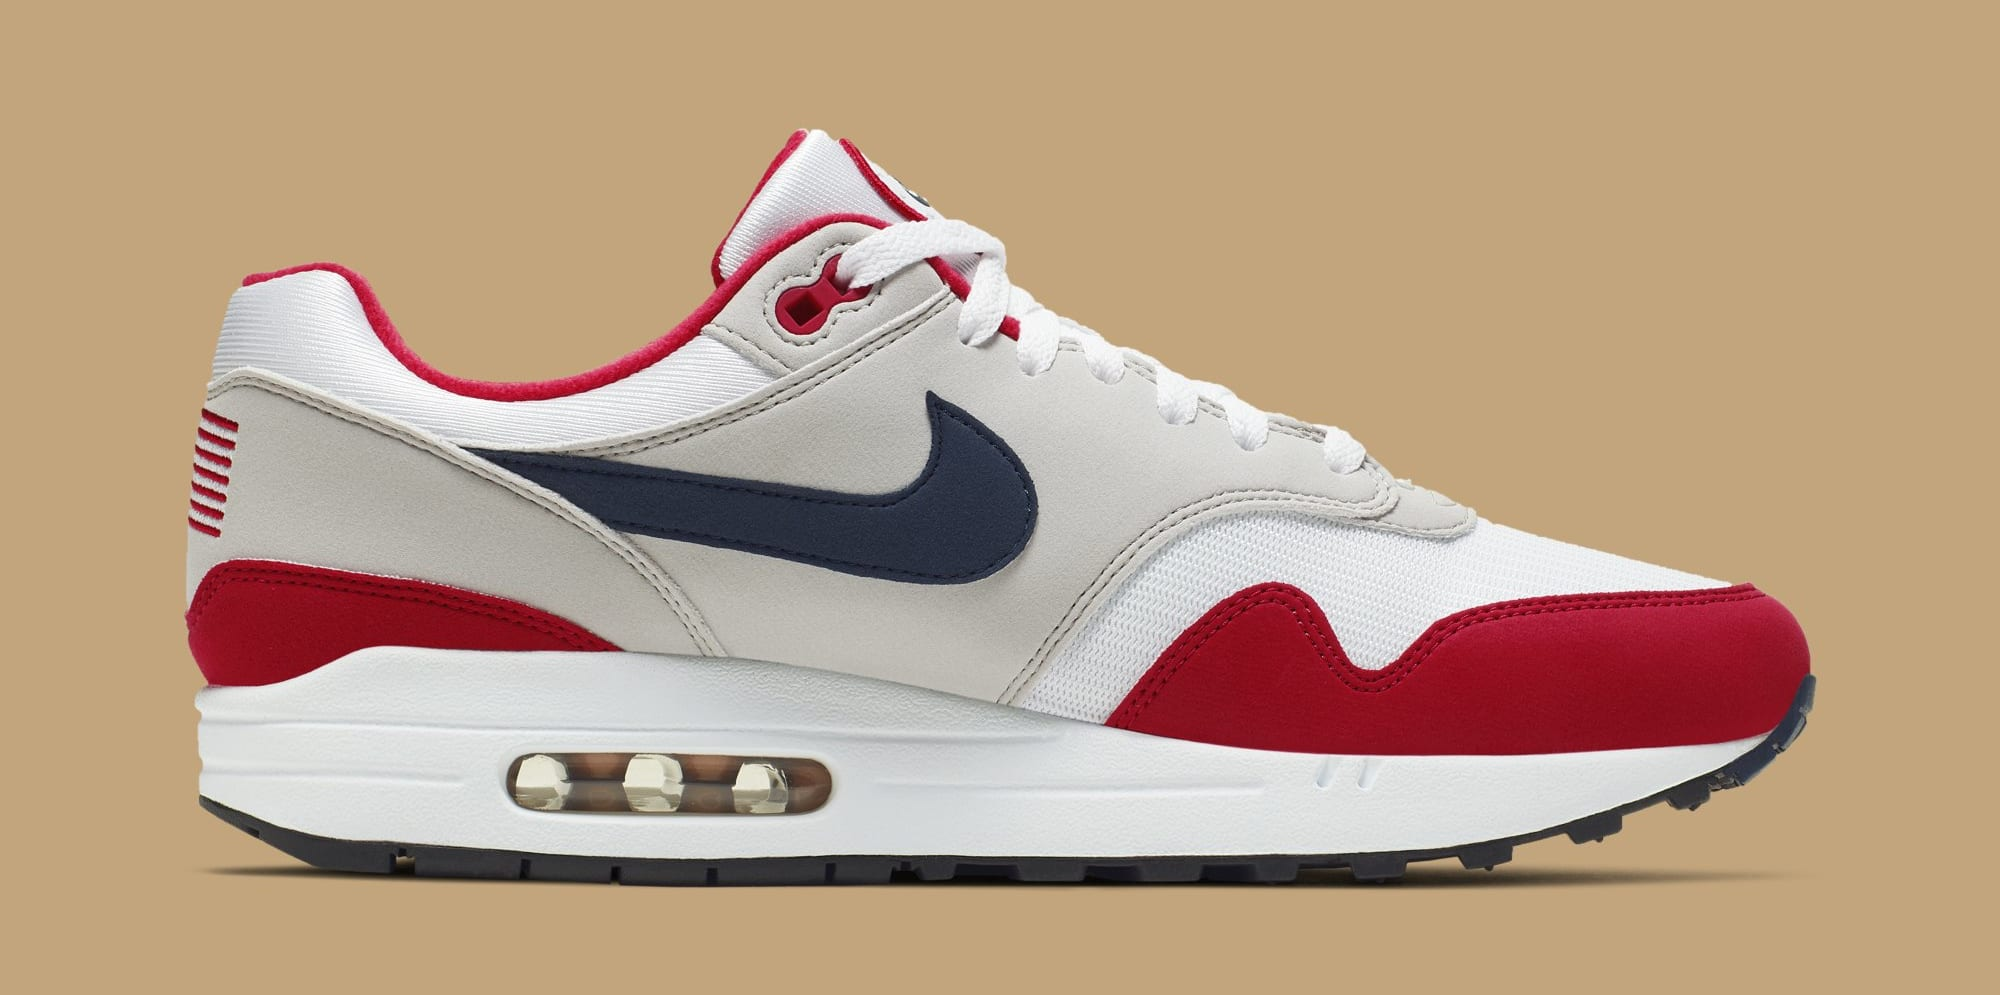 Nike Air Max 1 'Fourth of July' CJ4283-100 (Medial)